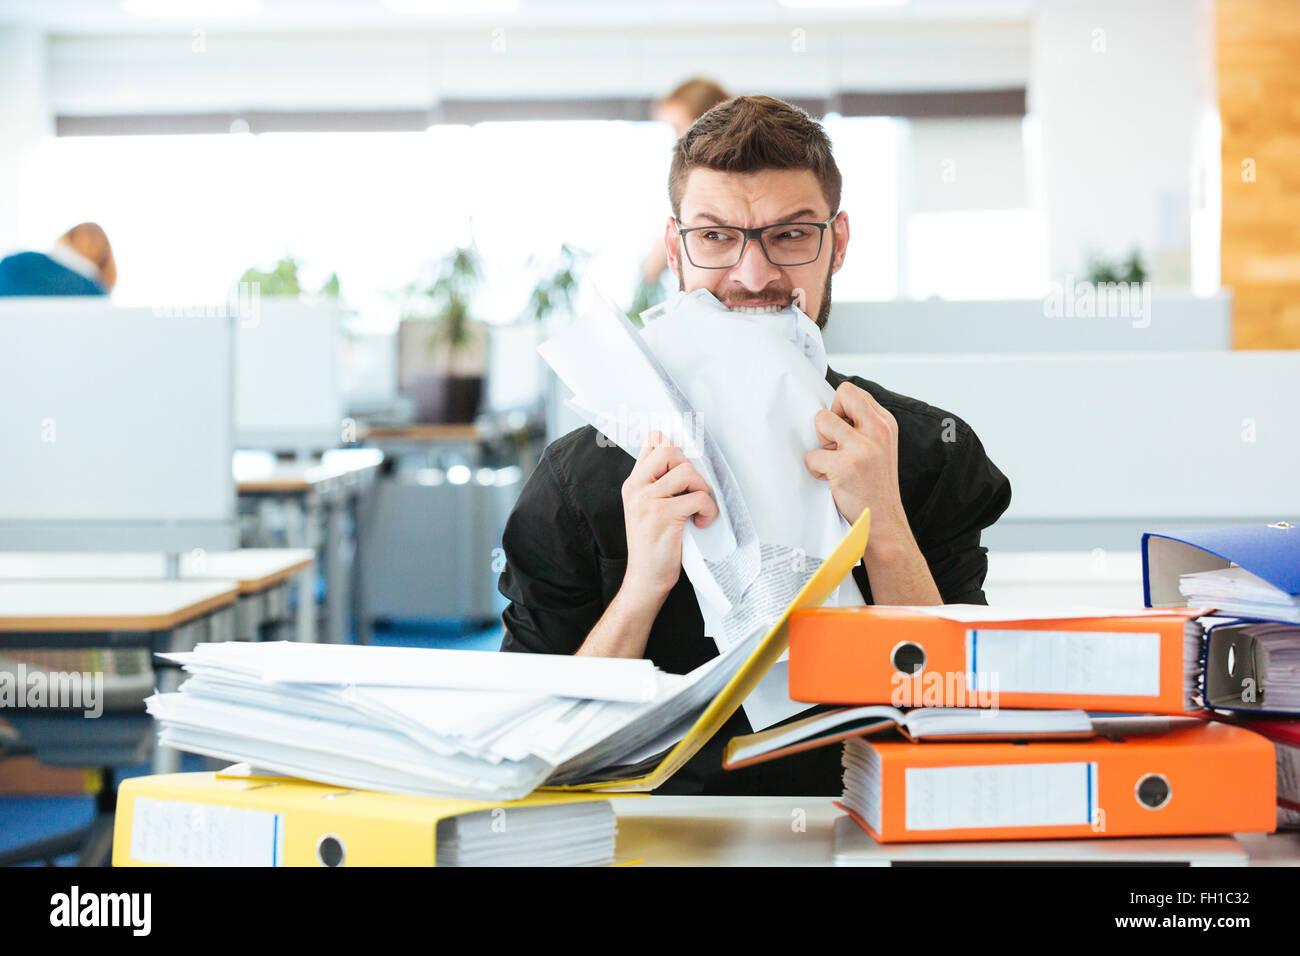 Young Woman biting paper in office Photo Stock